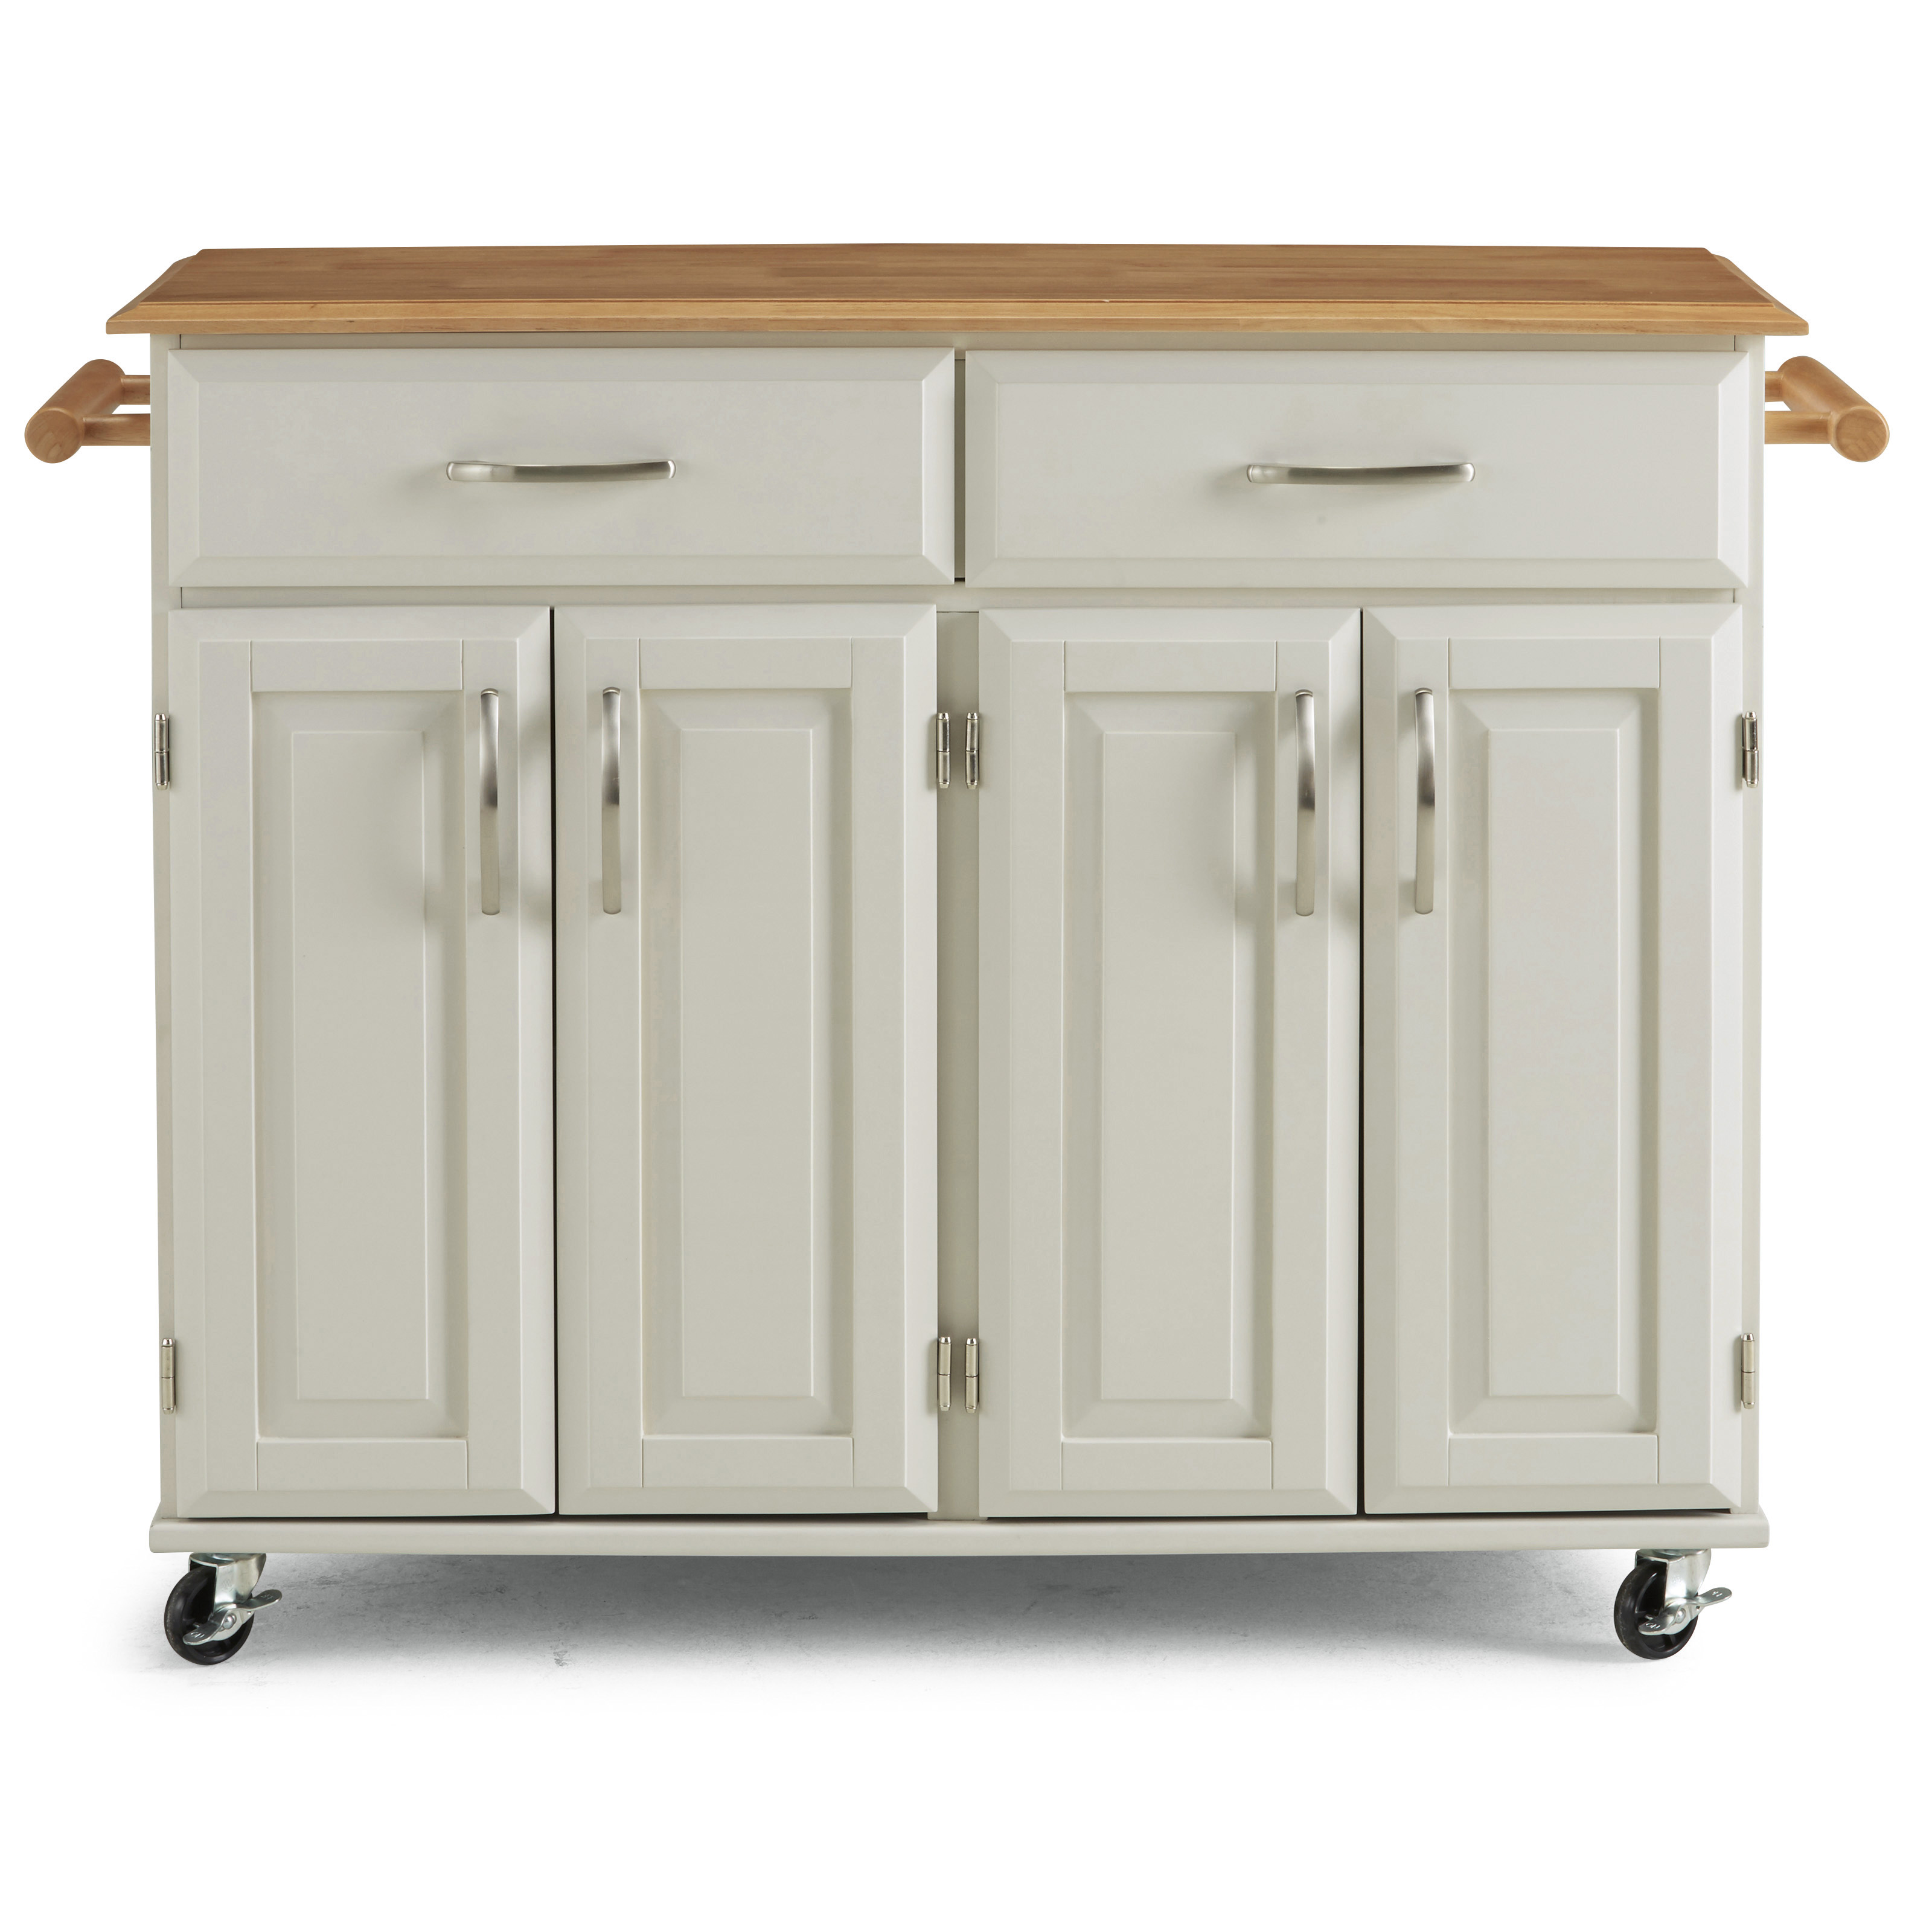 Blanche Kitchen Cart by homestyles at Godby Home Furnishings